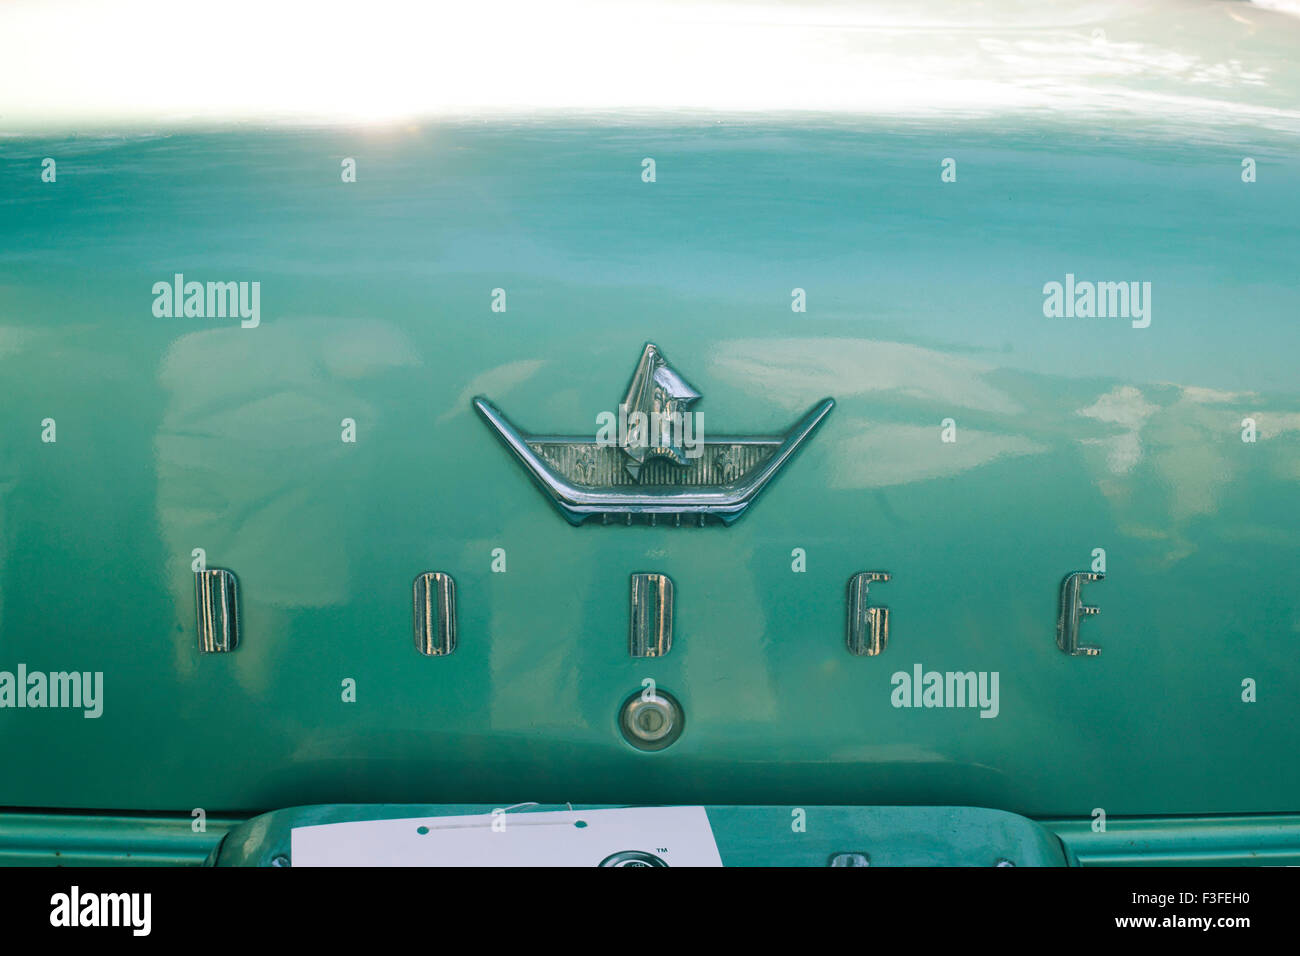 Vintage cars Dodge Custom Royal - Stock Image